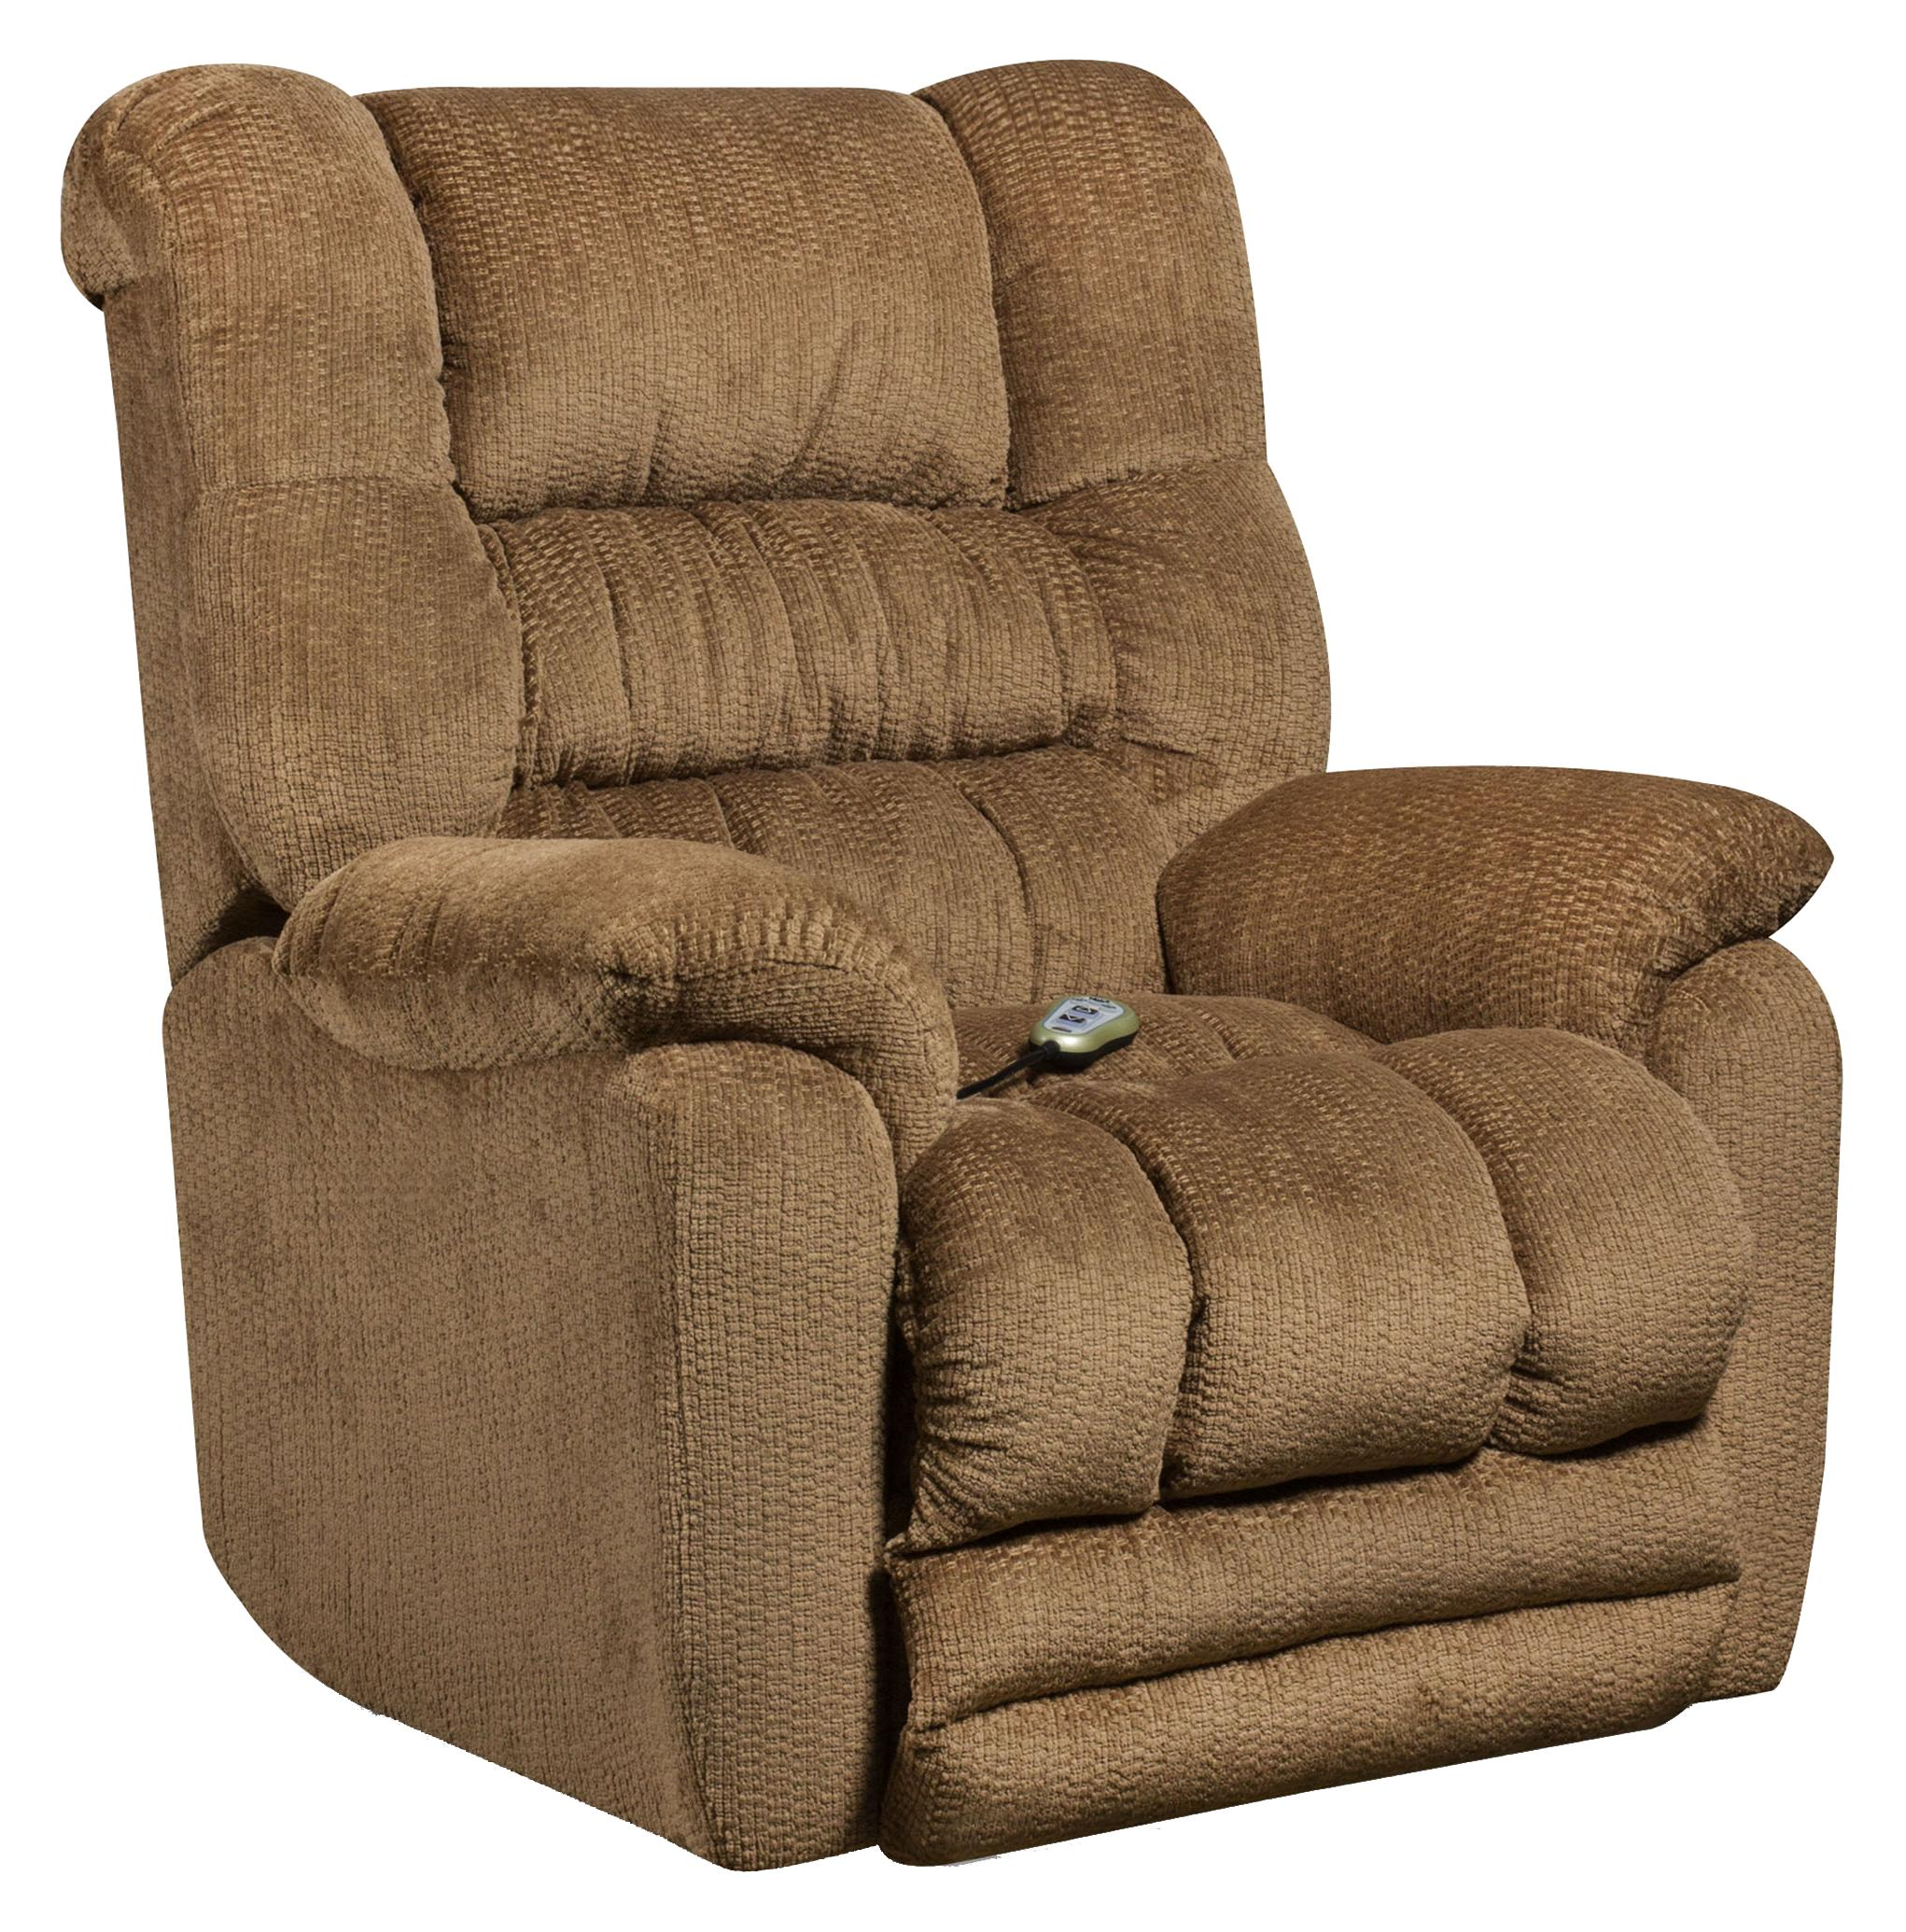 green recliners front types furniture recliner